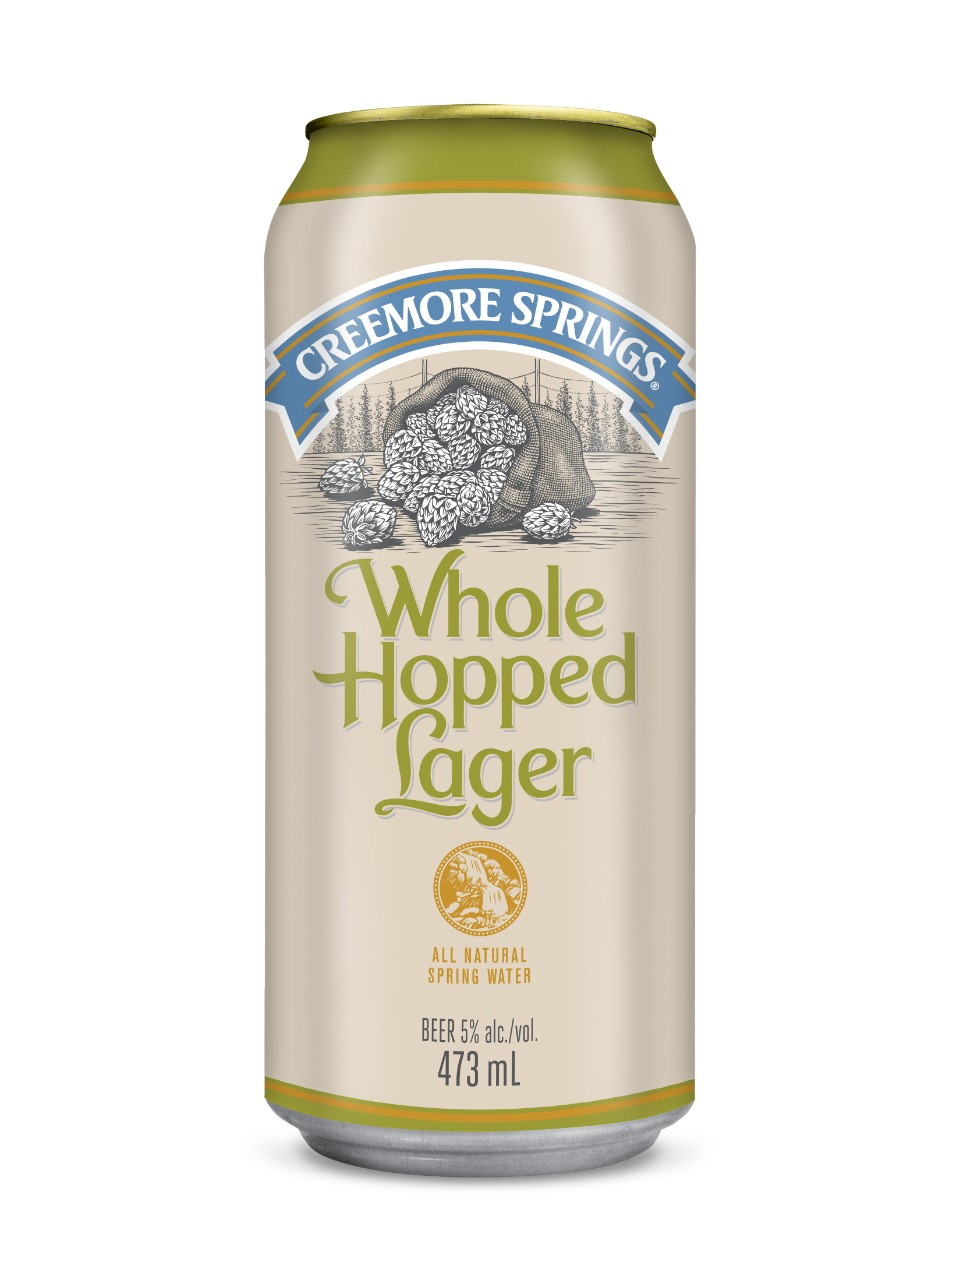 CREEMORE SPRINGS WHOLE HOPPED LAGER